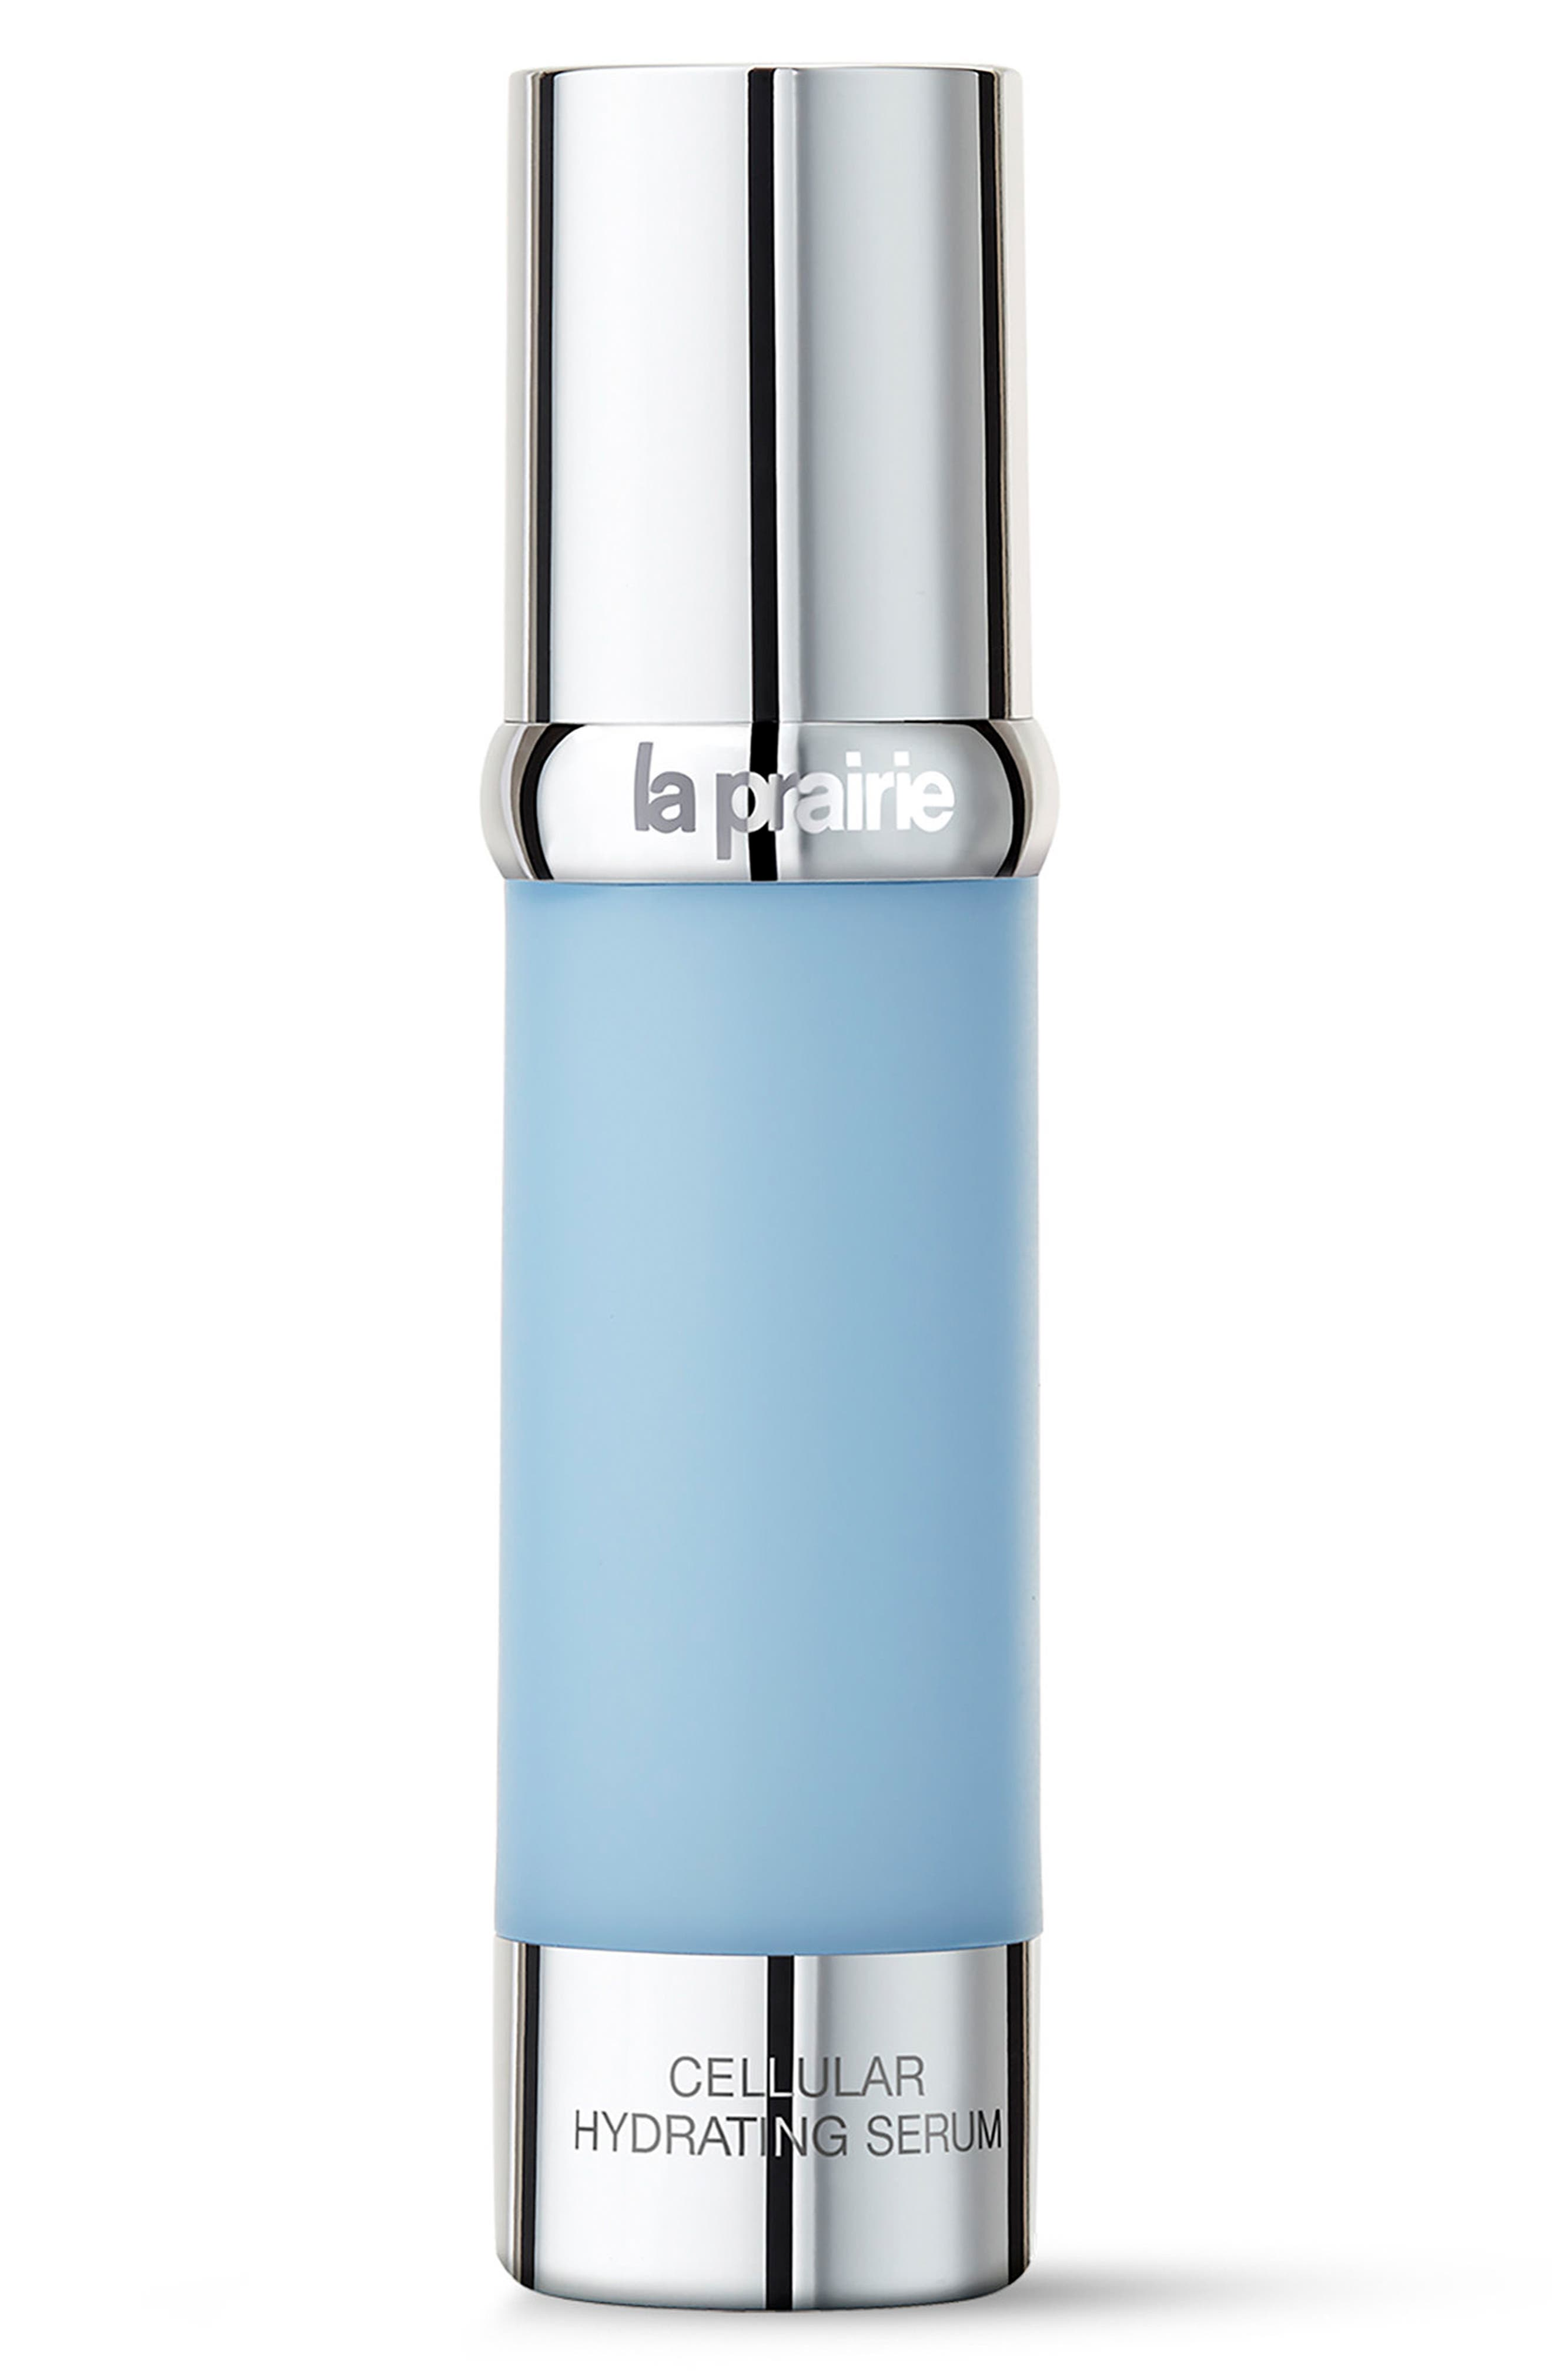 Alternate Image 1 Selected - La Prairie Cellular Hydrating Serum